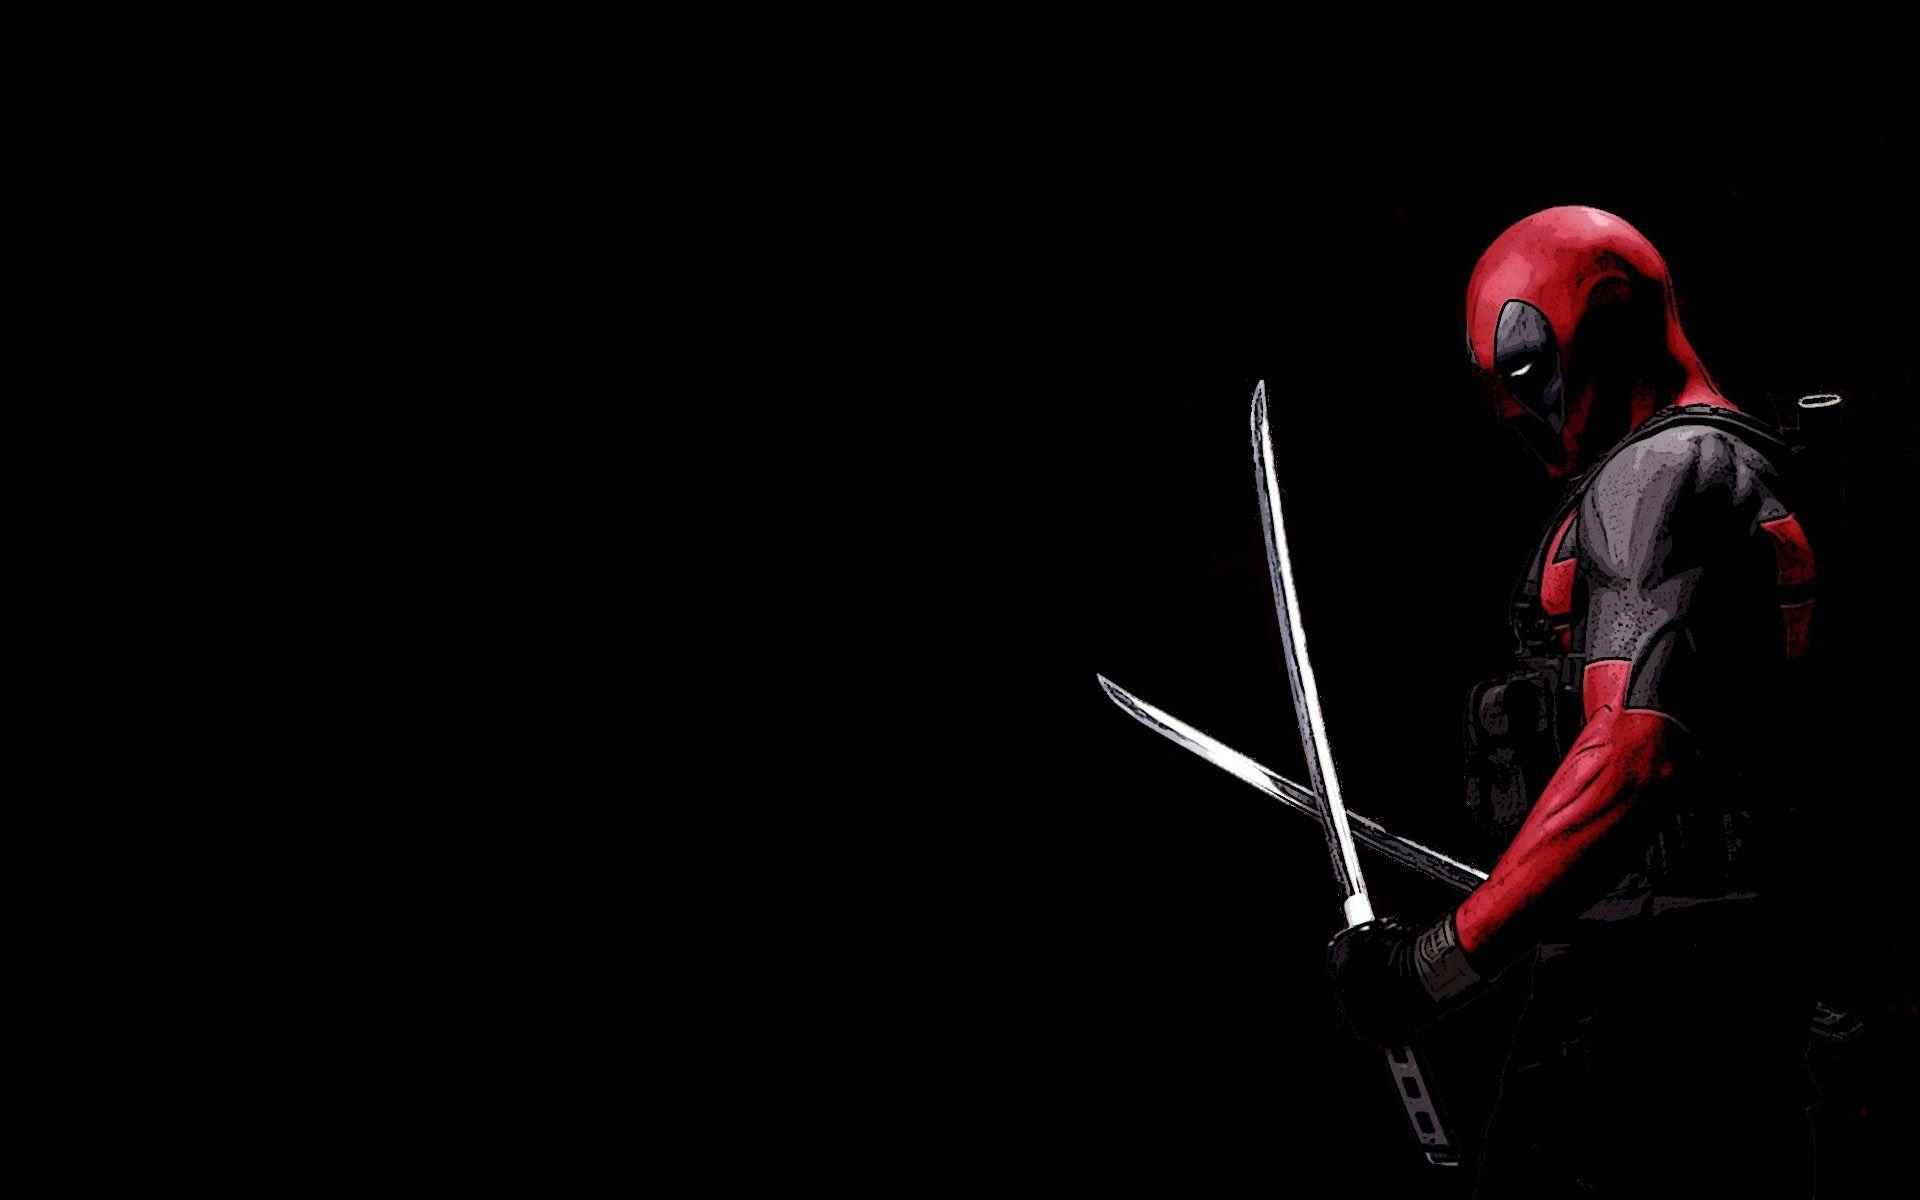 Deadpool Backgrounds - Wallpaper Cave